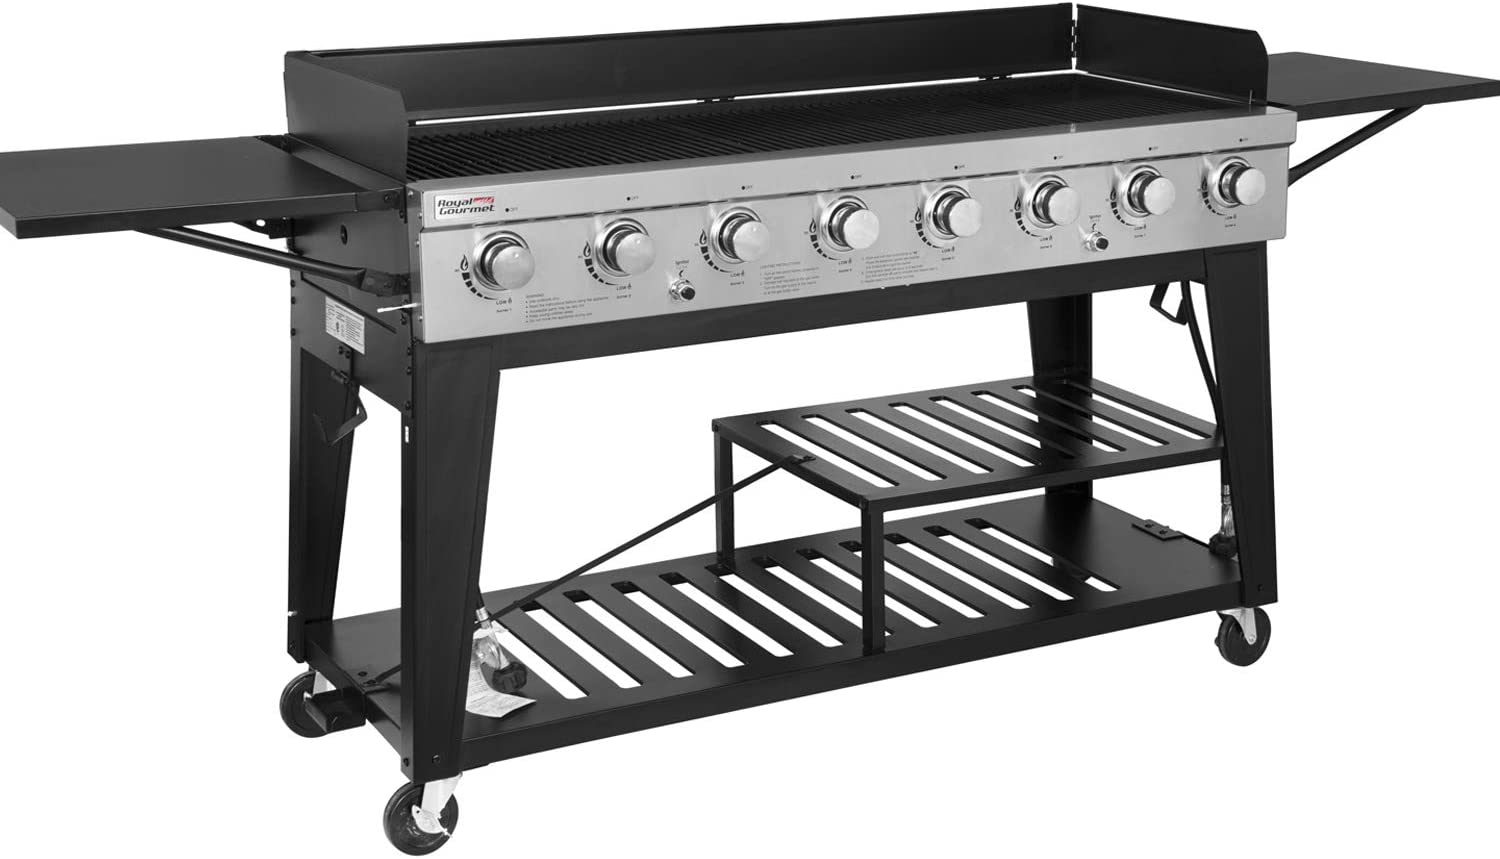 Propane Outdoor Griddle